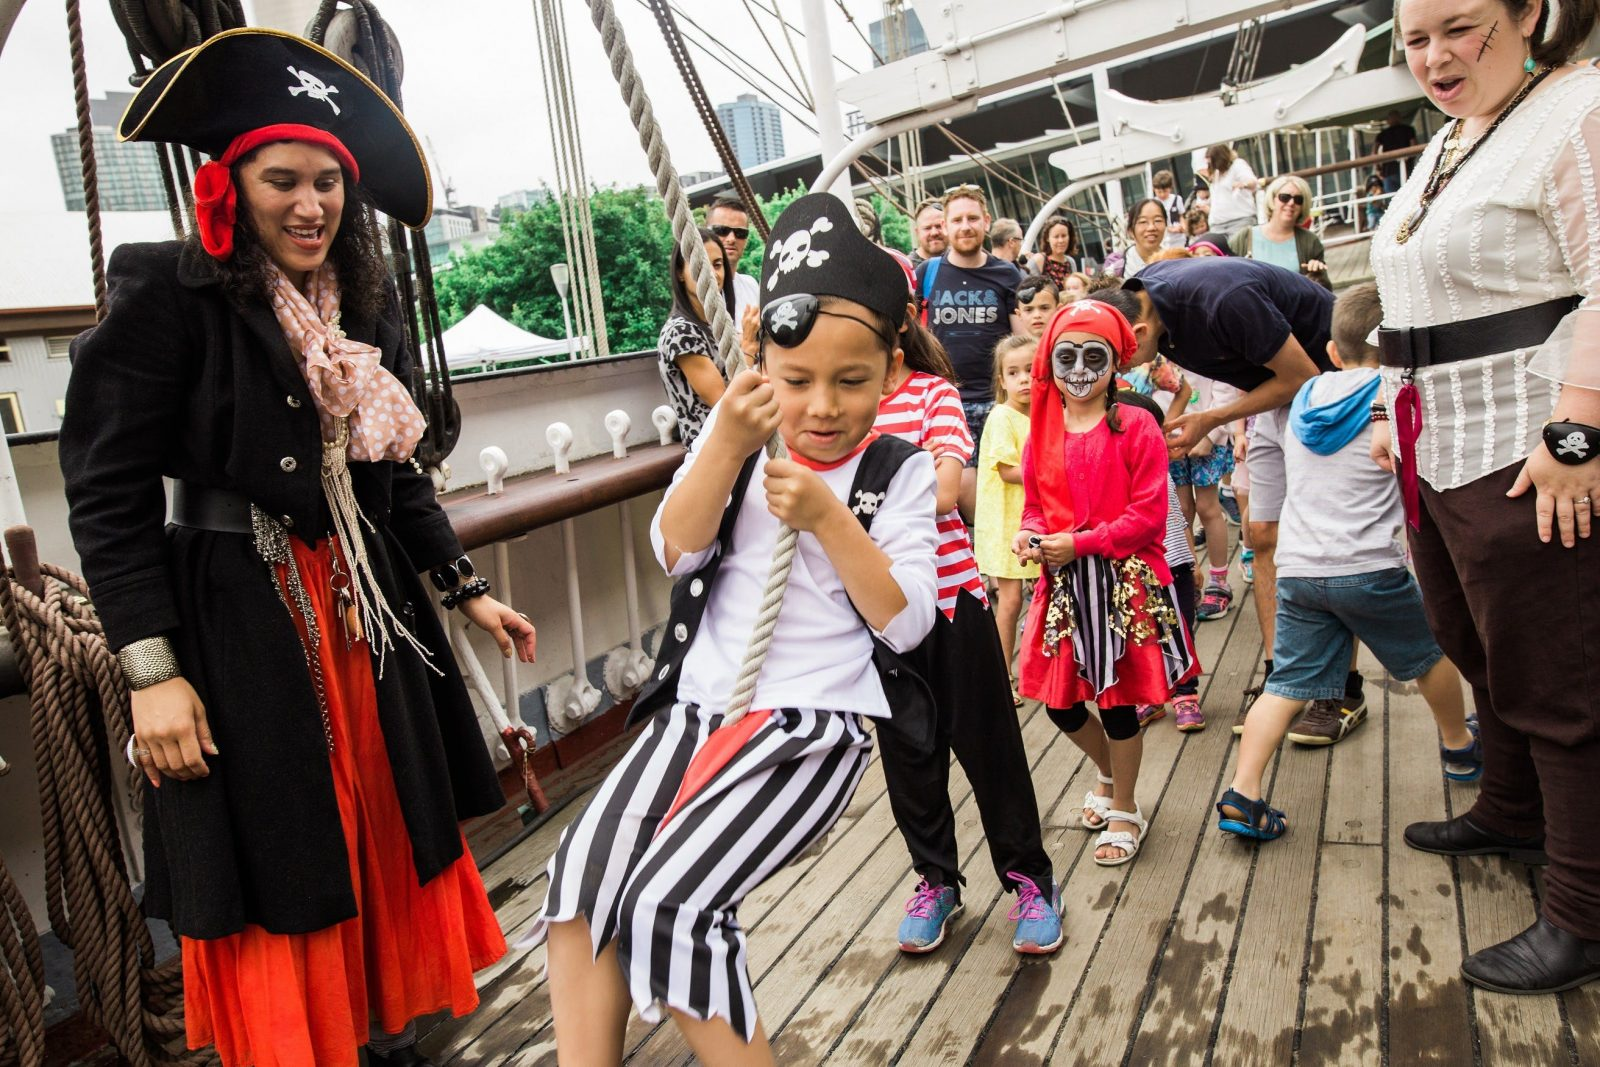 Pirate Sunday at Polly Woodside